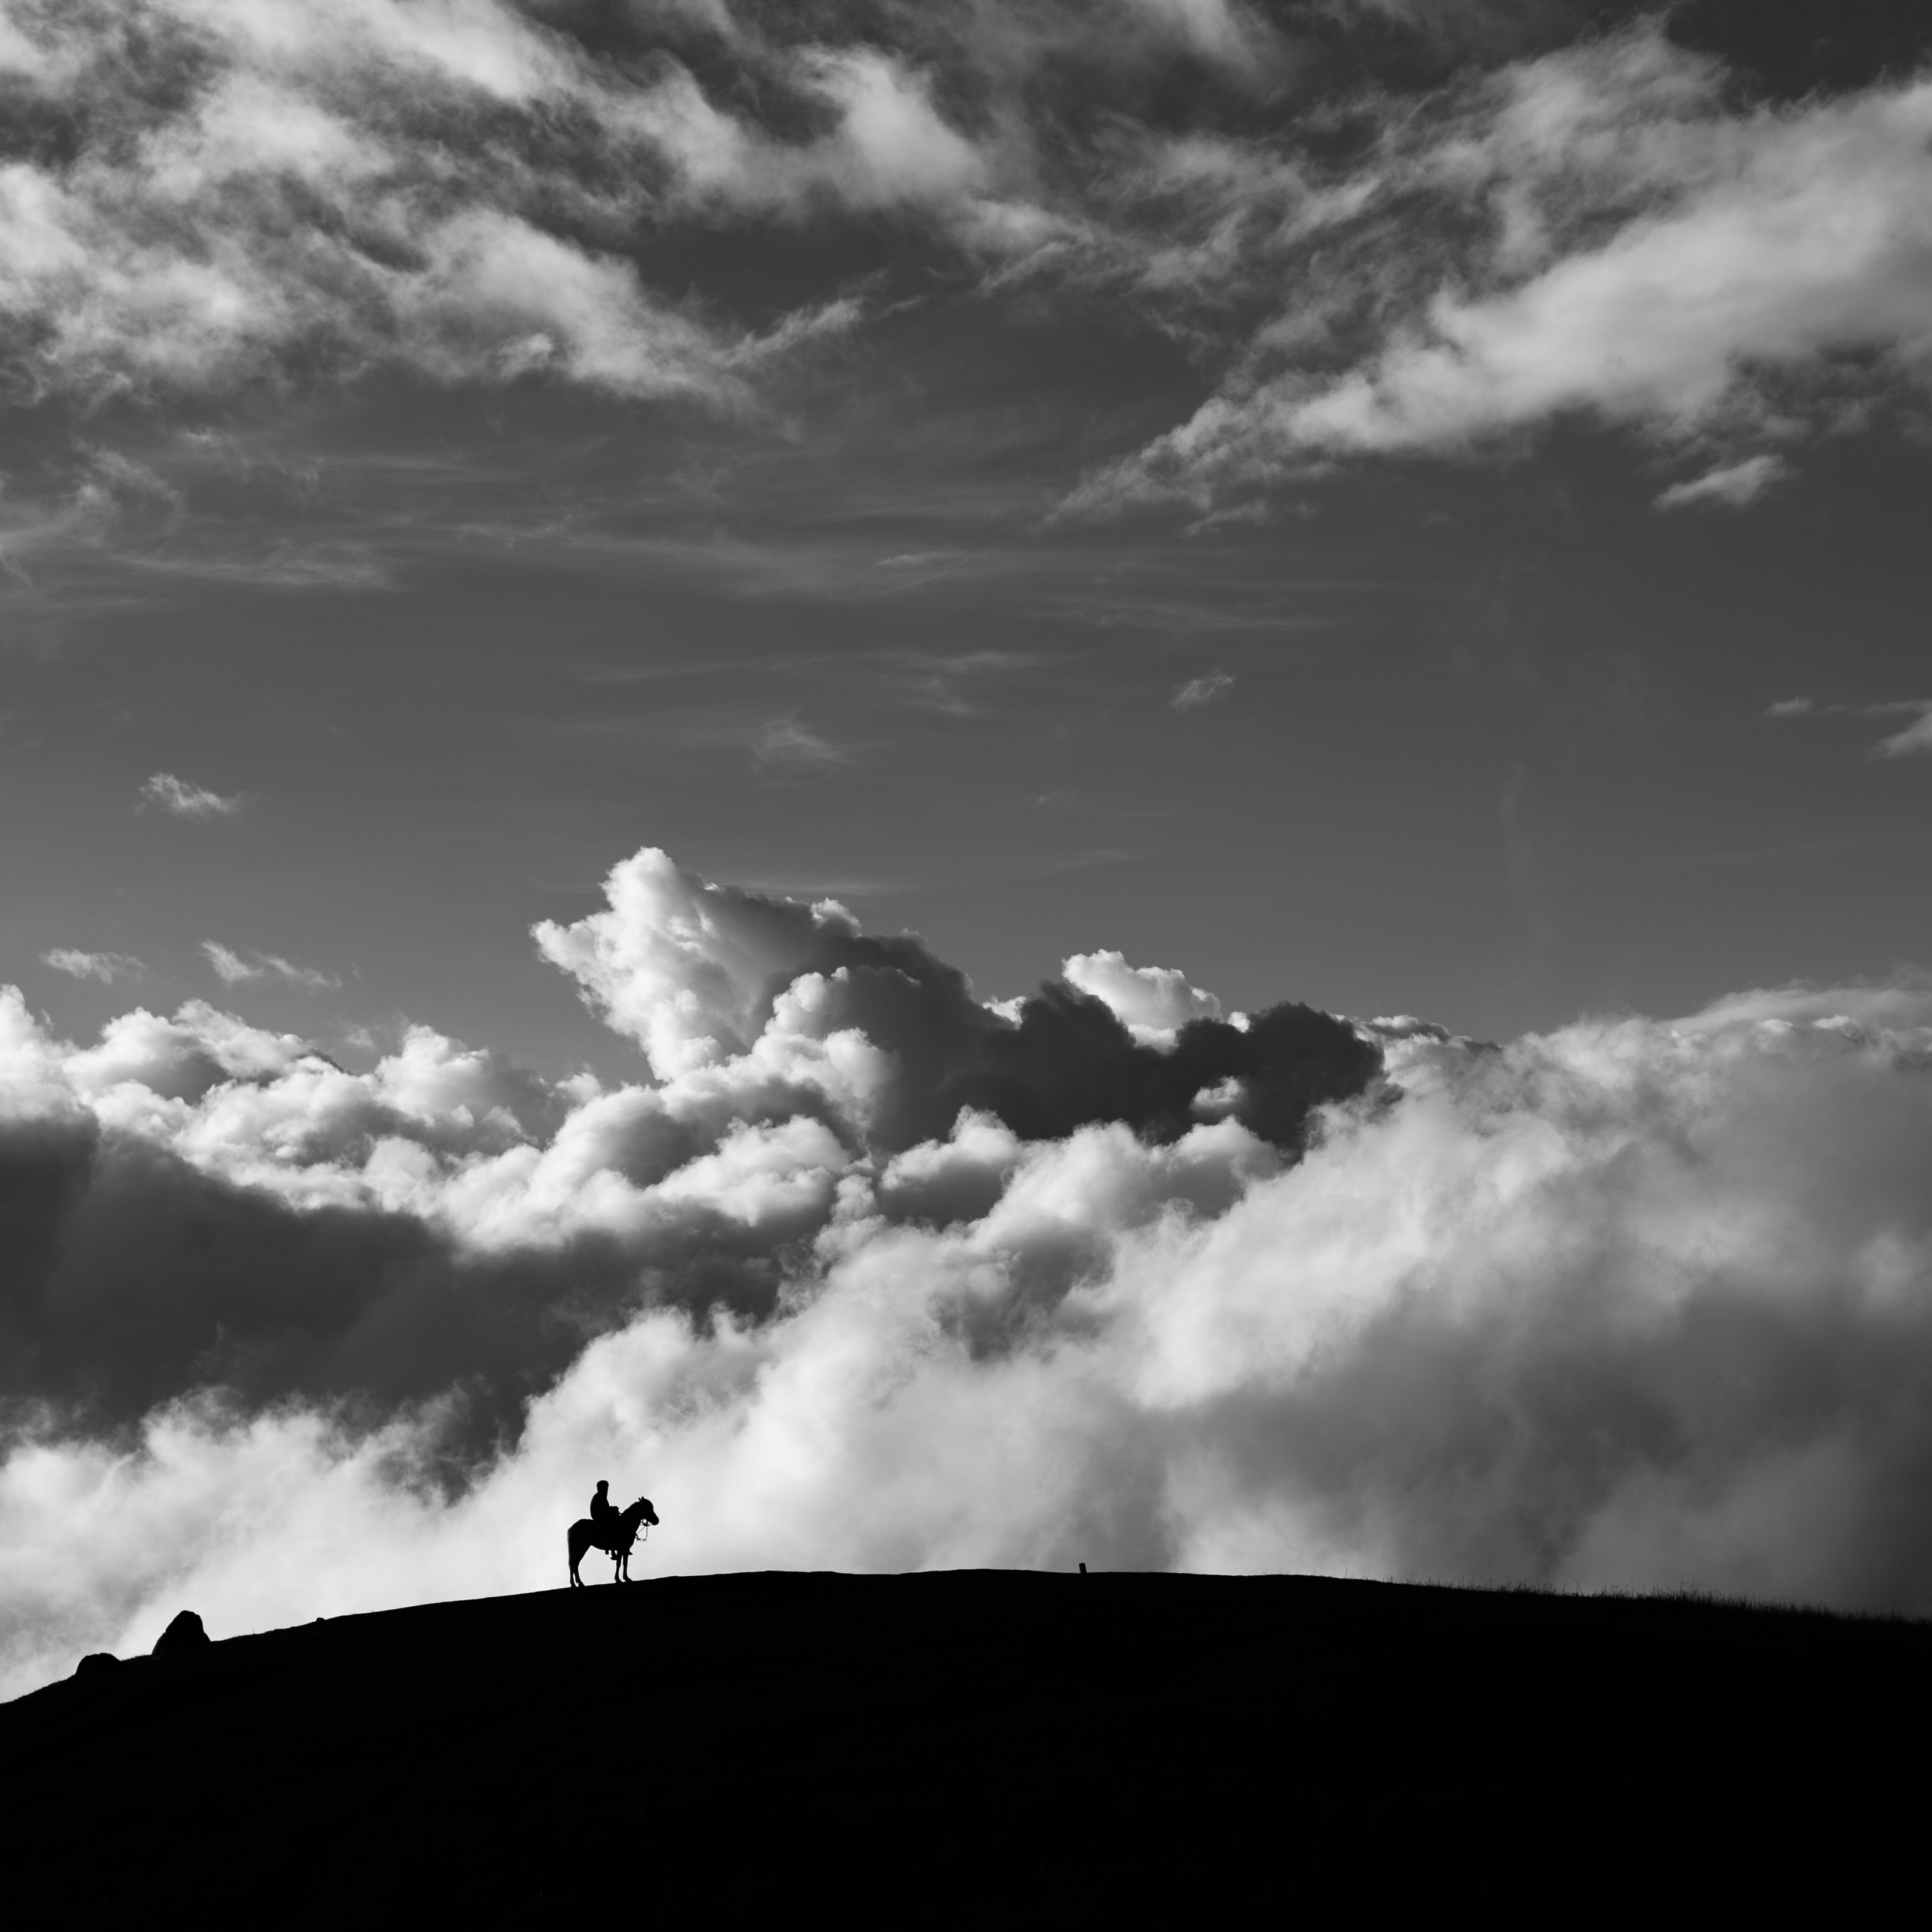 grayscale photography of silhouette of man riding horse at mountain with cumulus clouds as background